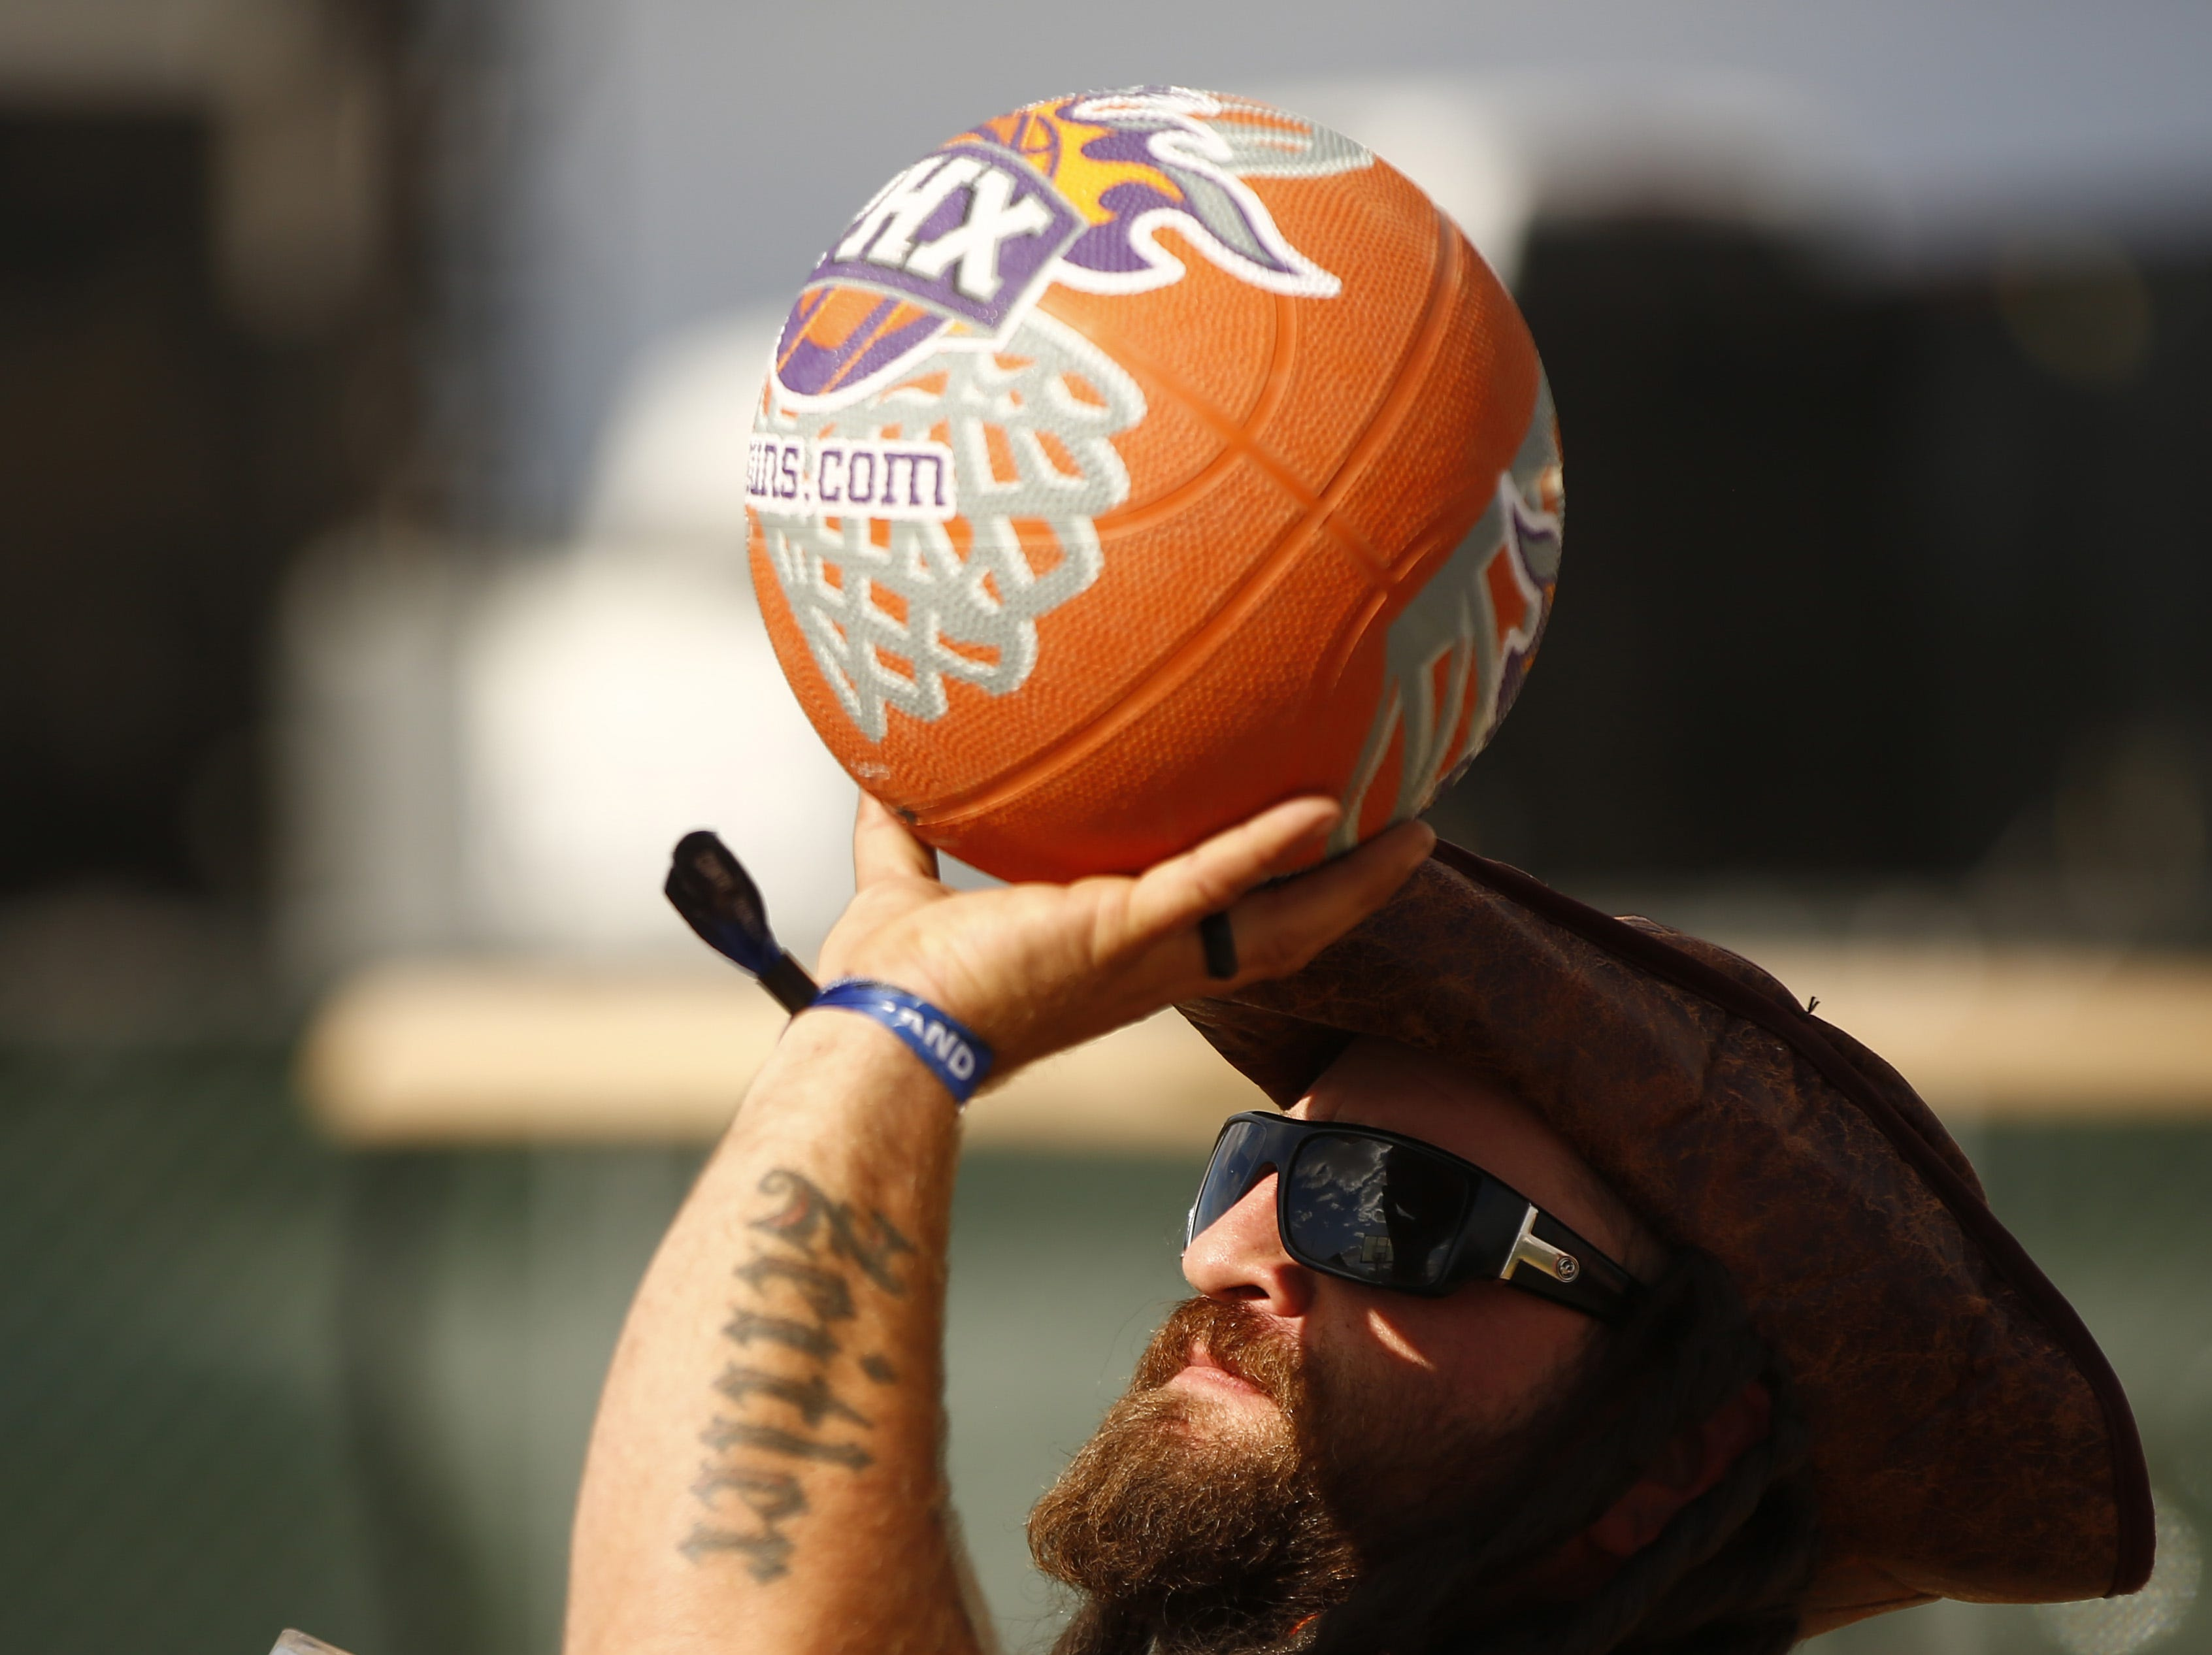 Pirate Chris Zeitler shoots baskets with Country musician Brandon Lay during a shootout for KMLE at Country Thunder in Florence, Ariz., on Friday, April 12, 2019.